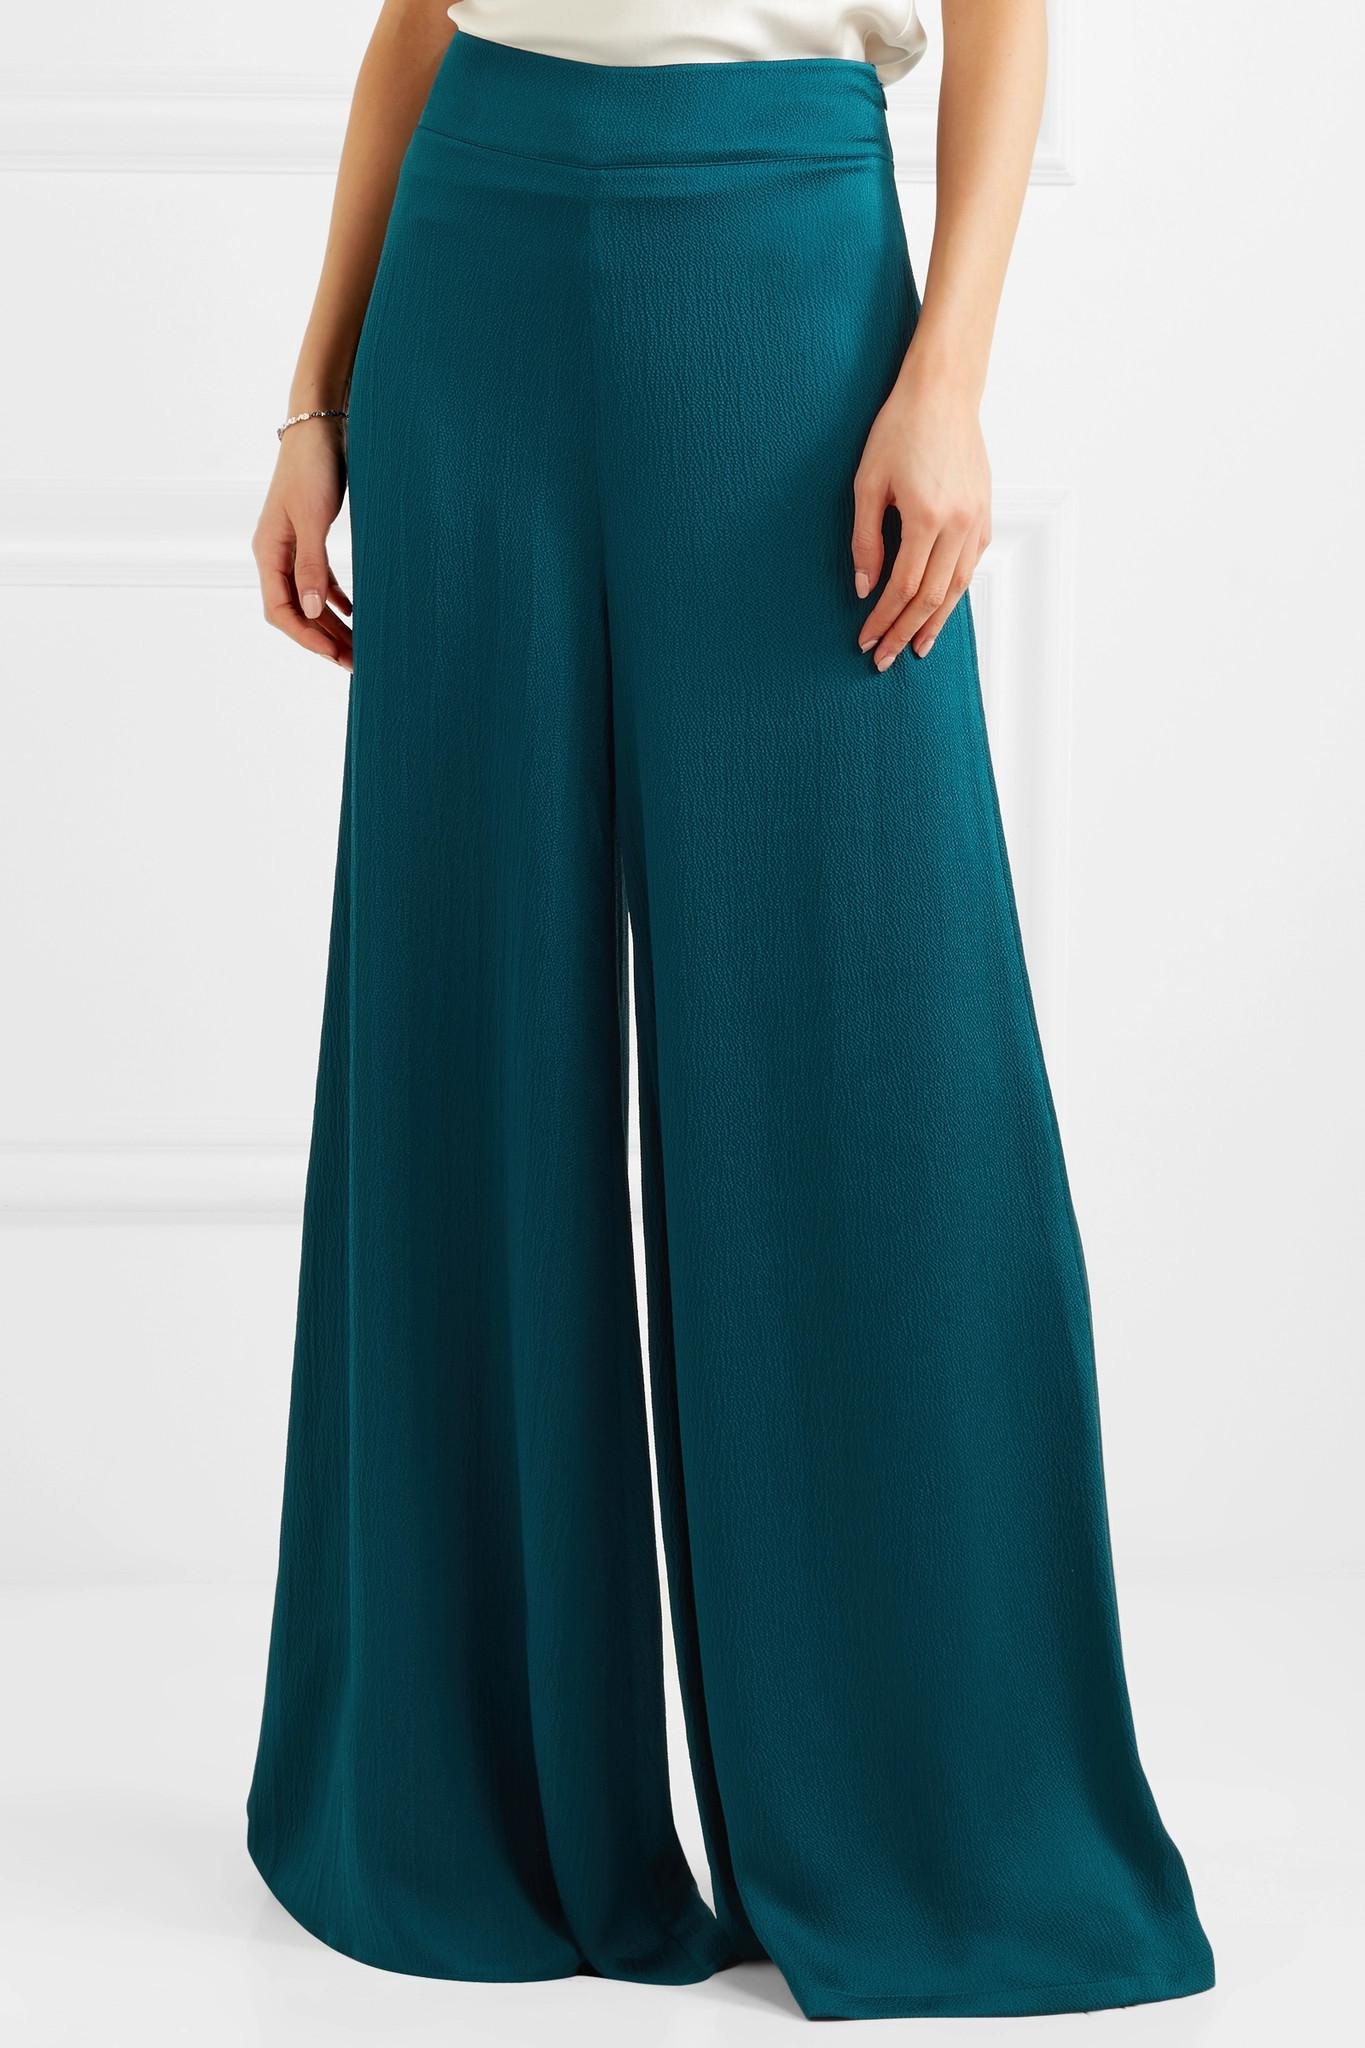 Cheap 100% Guaranteed Best Seller Nara Hammered Silk-satin Wide-leg Pants - Emerald SAFiYAA Sale Best Prices RxbV6jl90